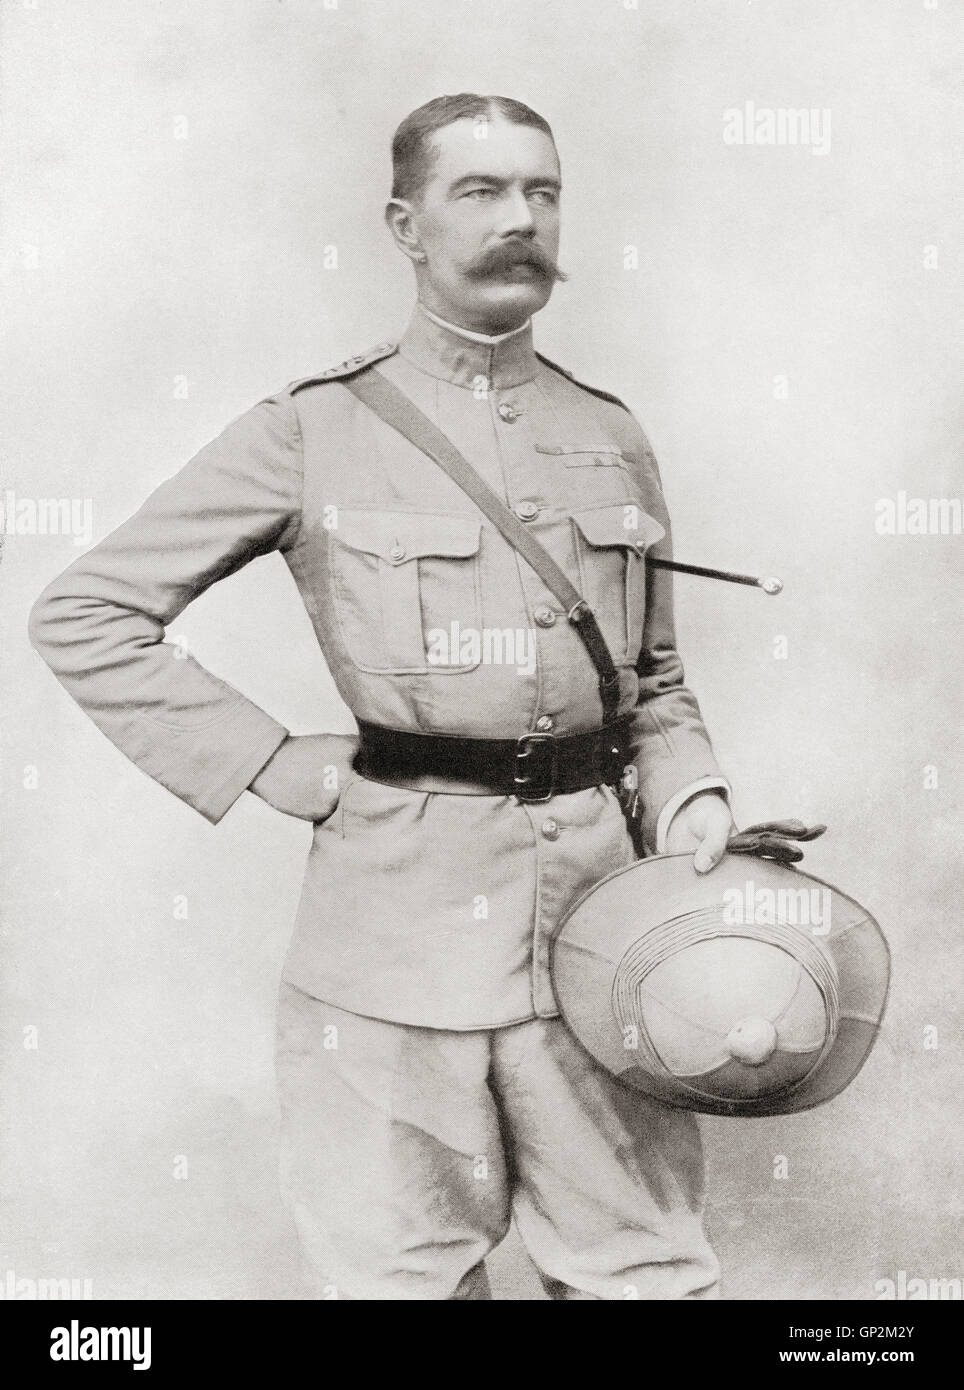 Lord Kitchener 1916 Stock Photos & Lord Kitchener 1916 Stock Images ...